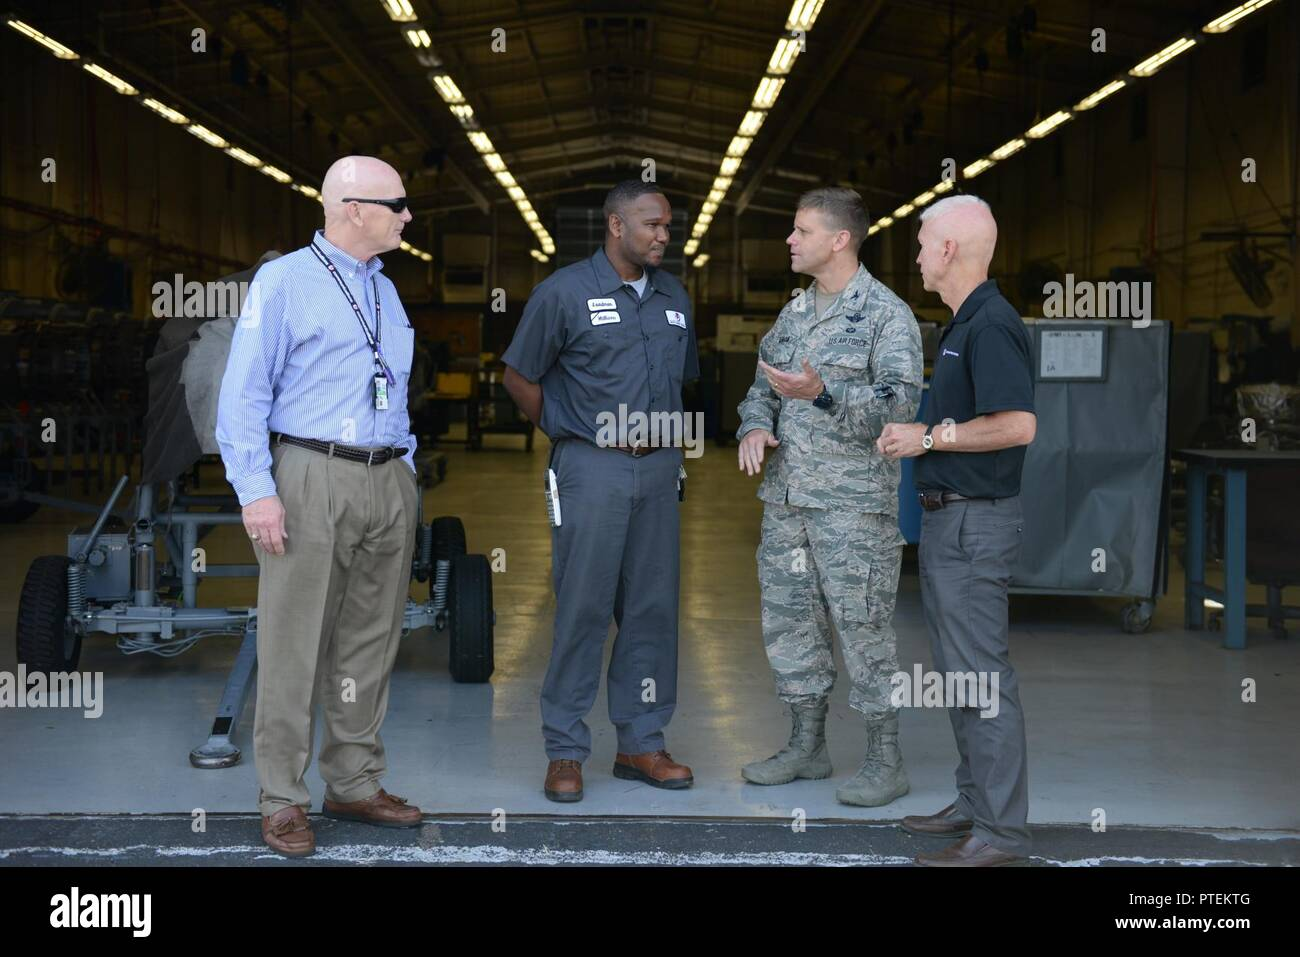 Col. William Denham, 14th Flying Training Wing Vice Commander, speaks with the L3 contracted maintainers July 17, 2017, on Columbus Air Force Base, Mississippi. The maintainers on Columbus AFB are contracted out and are a large part of the Columbus AFB community. - Stock Image